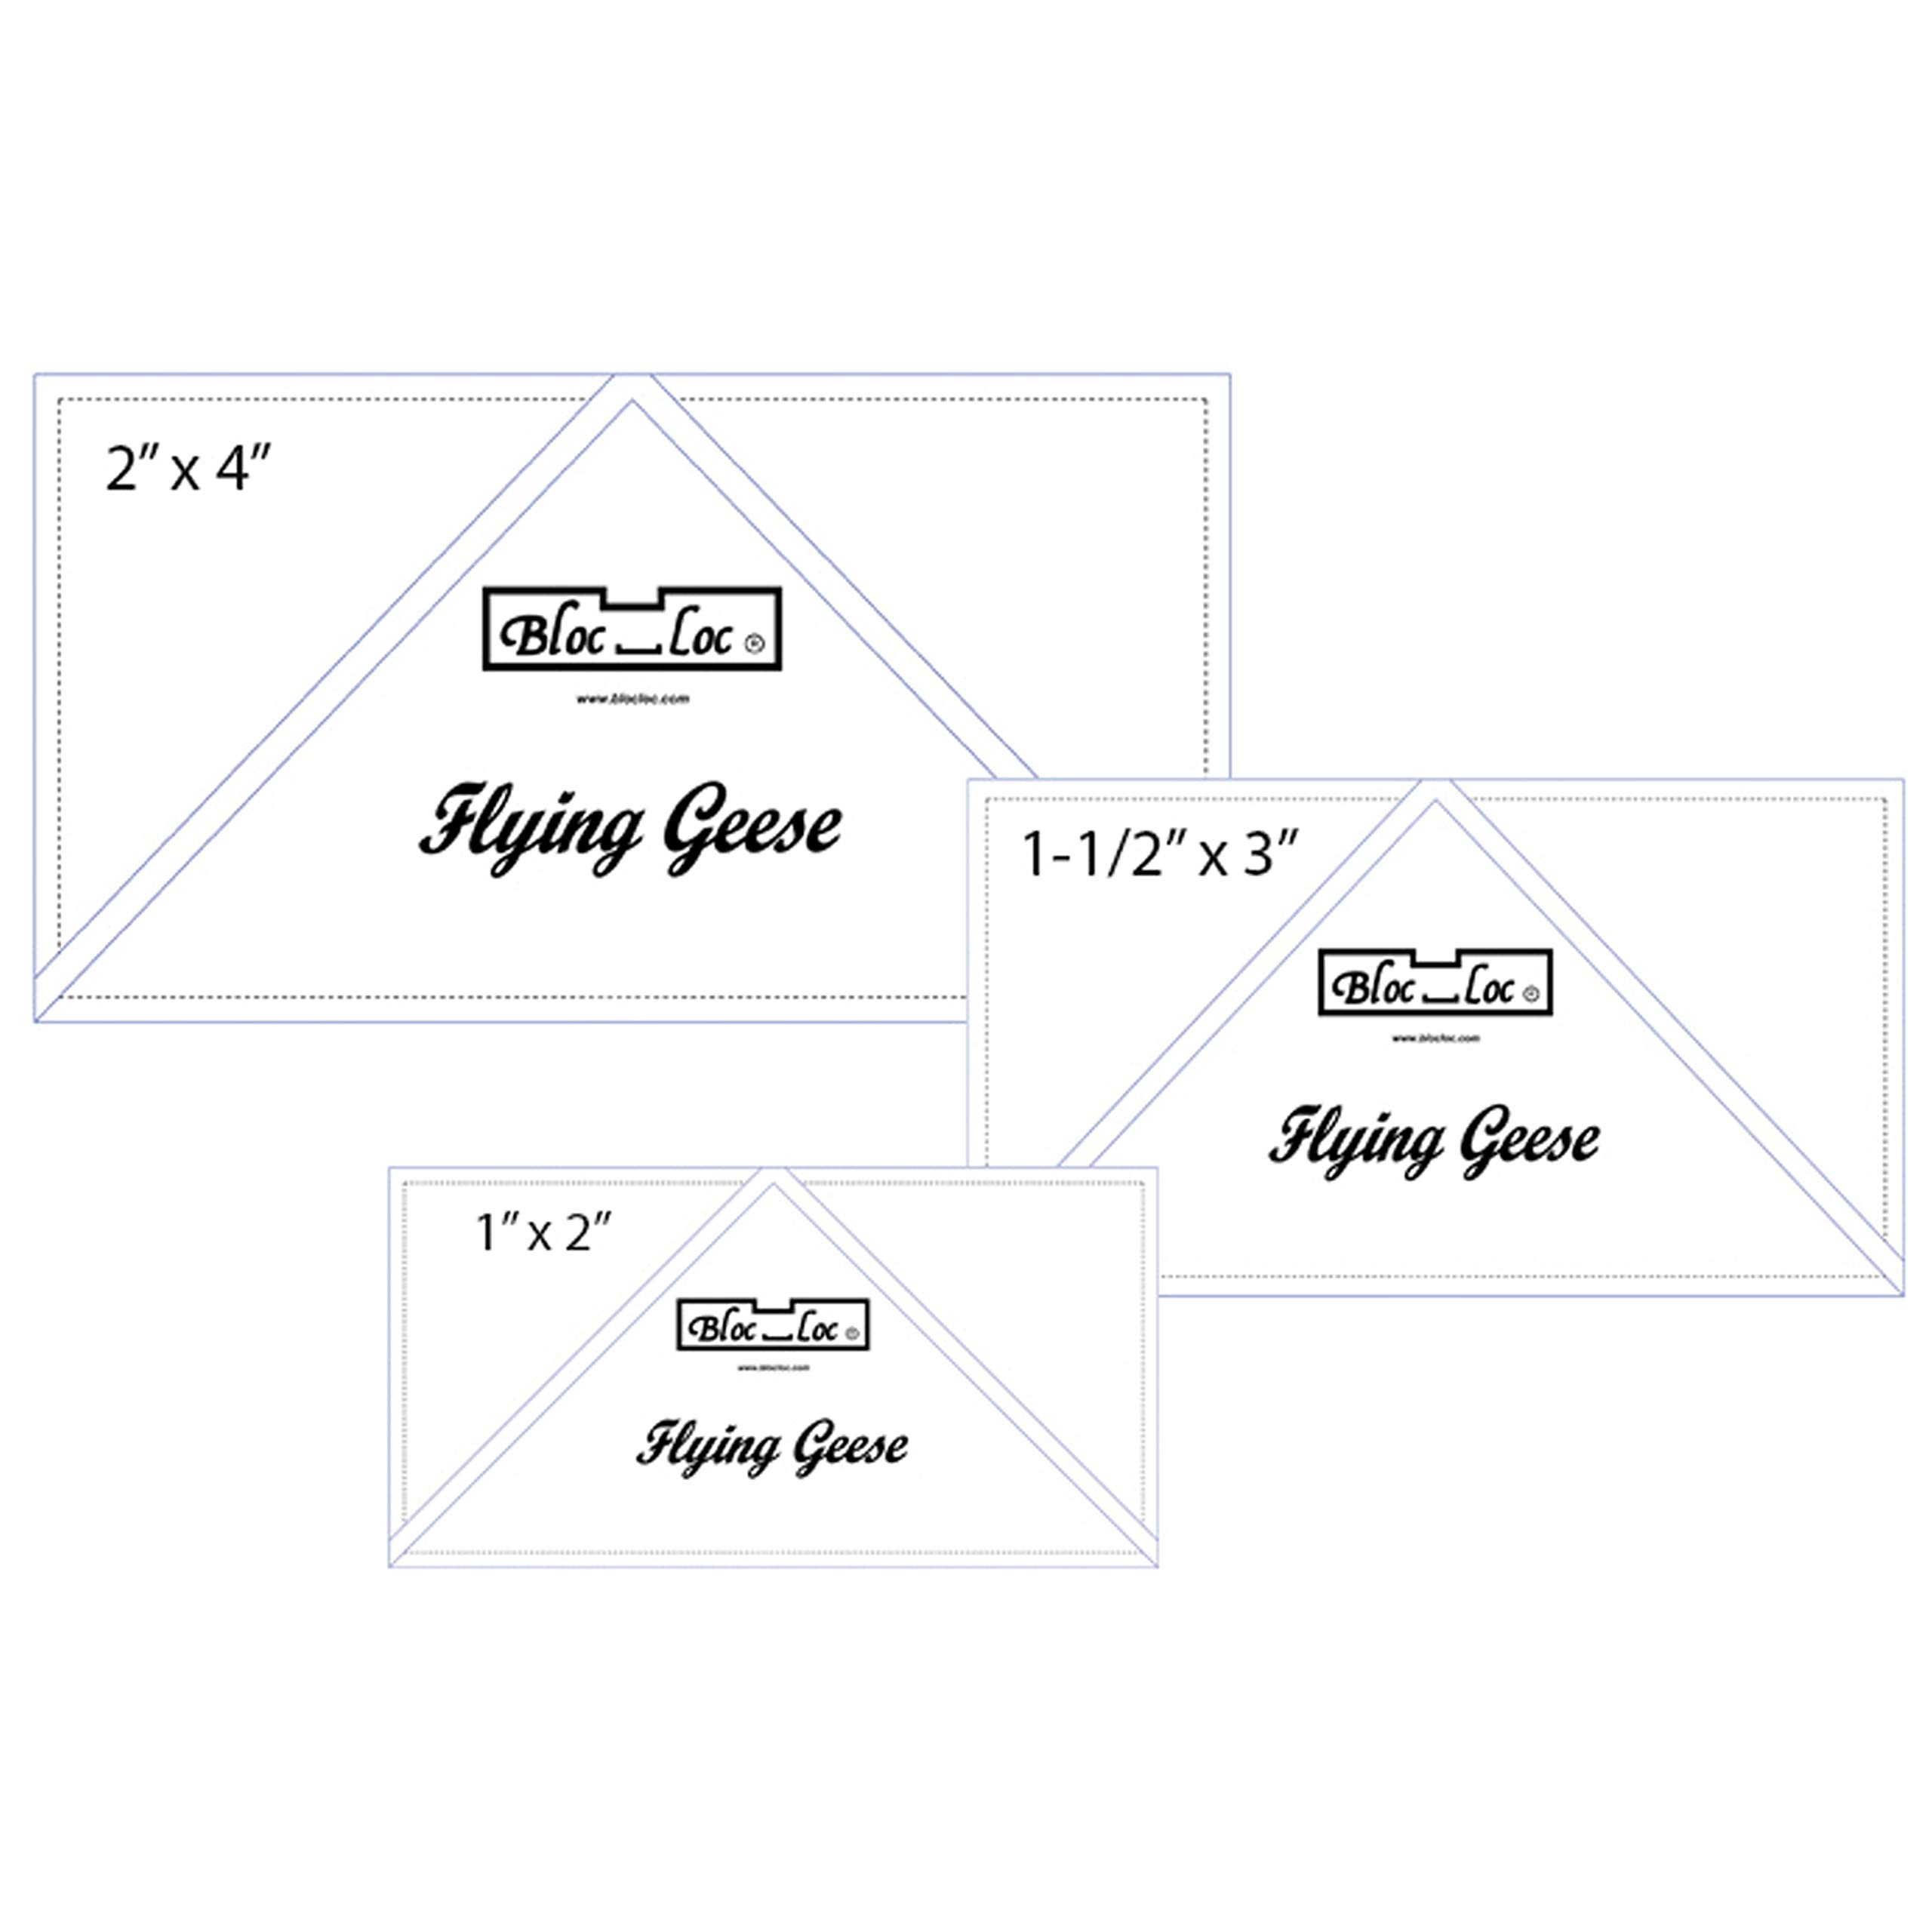 Bloc Loc 1'' x 2'' & 1.5'' x 3'' & 2'' x 4'' Flying Geese Square Up Rulers Set #6 by Bloc Loc